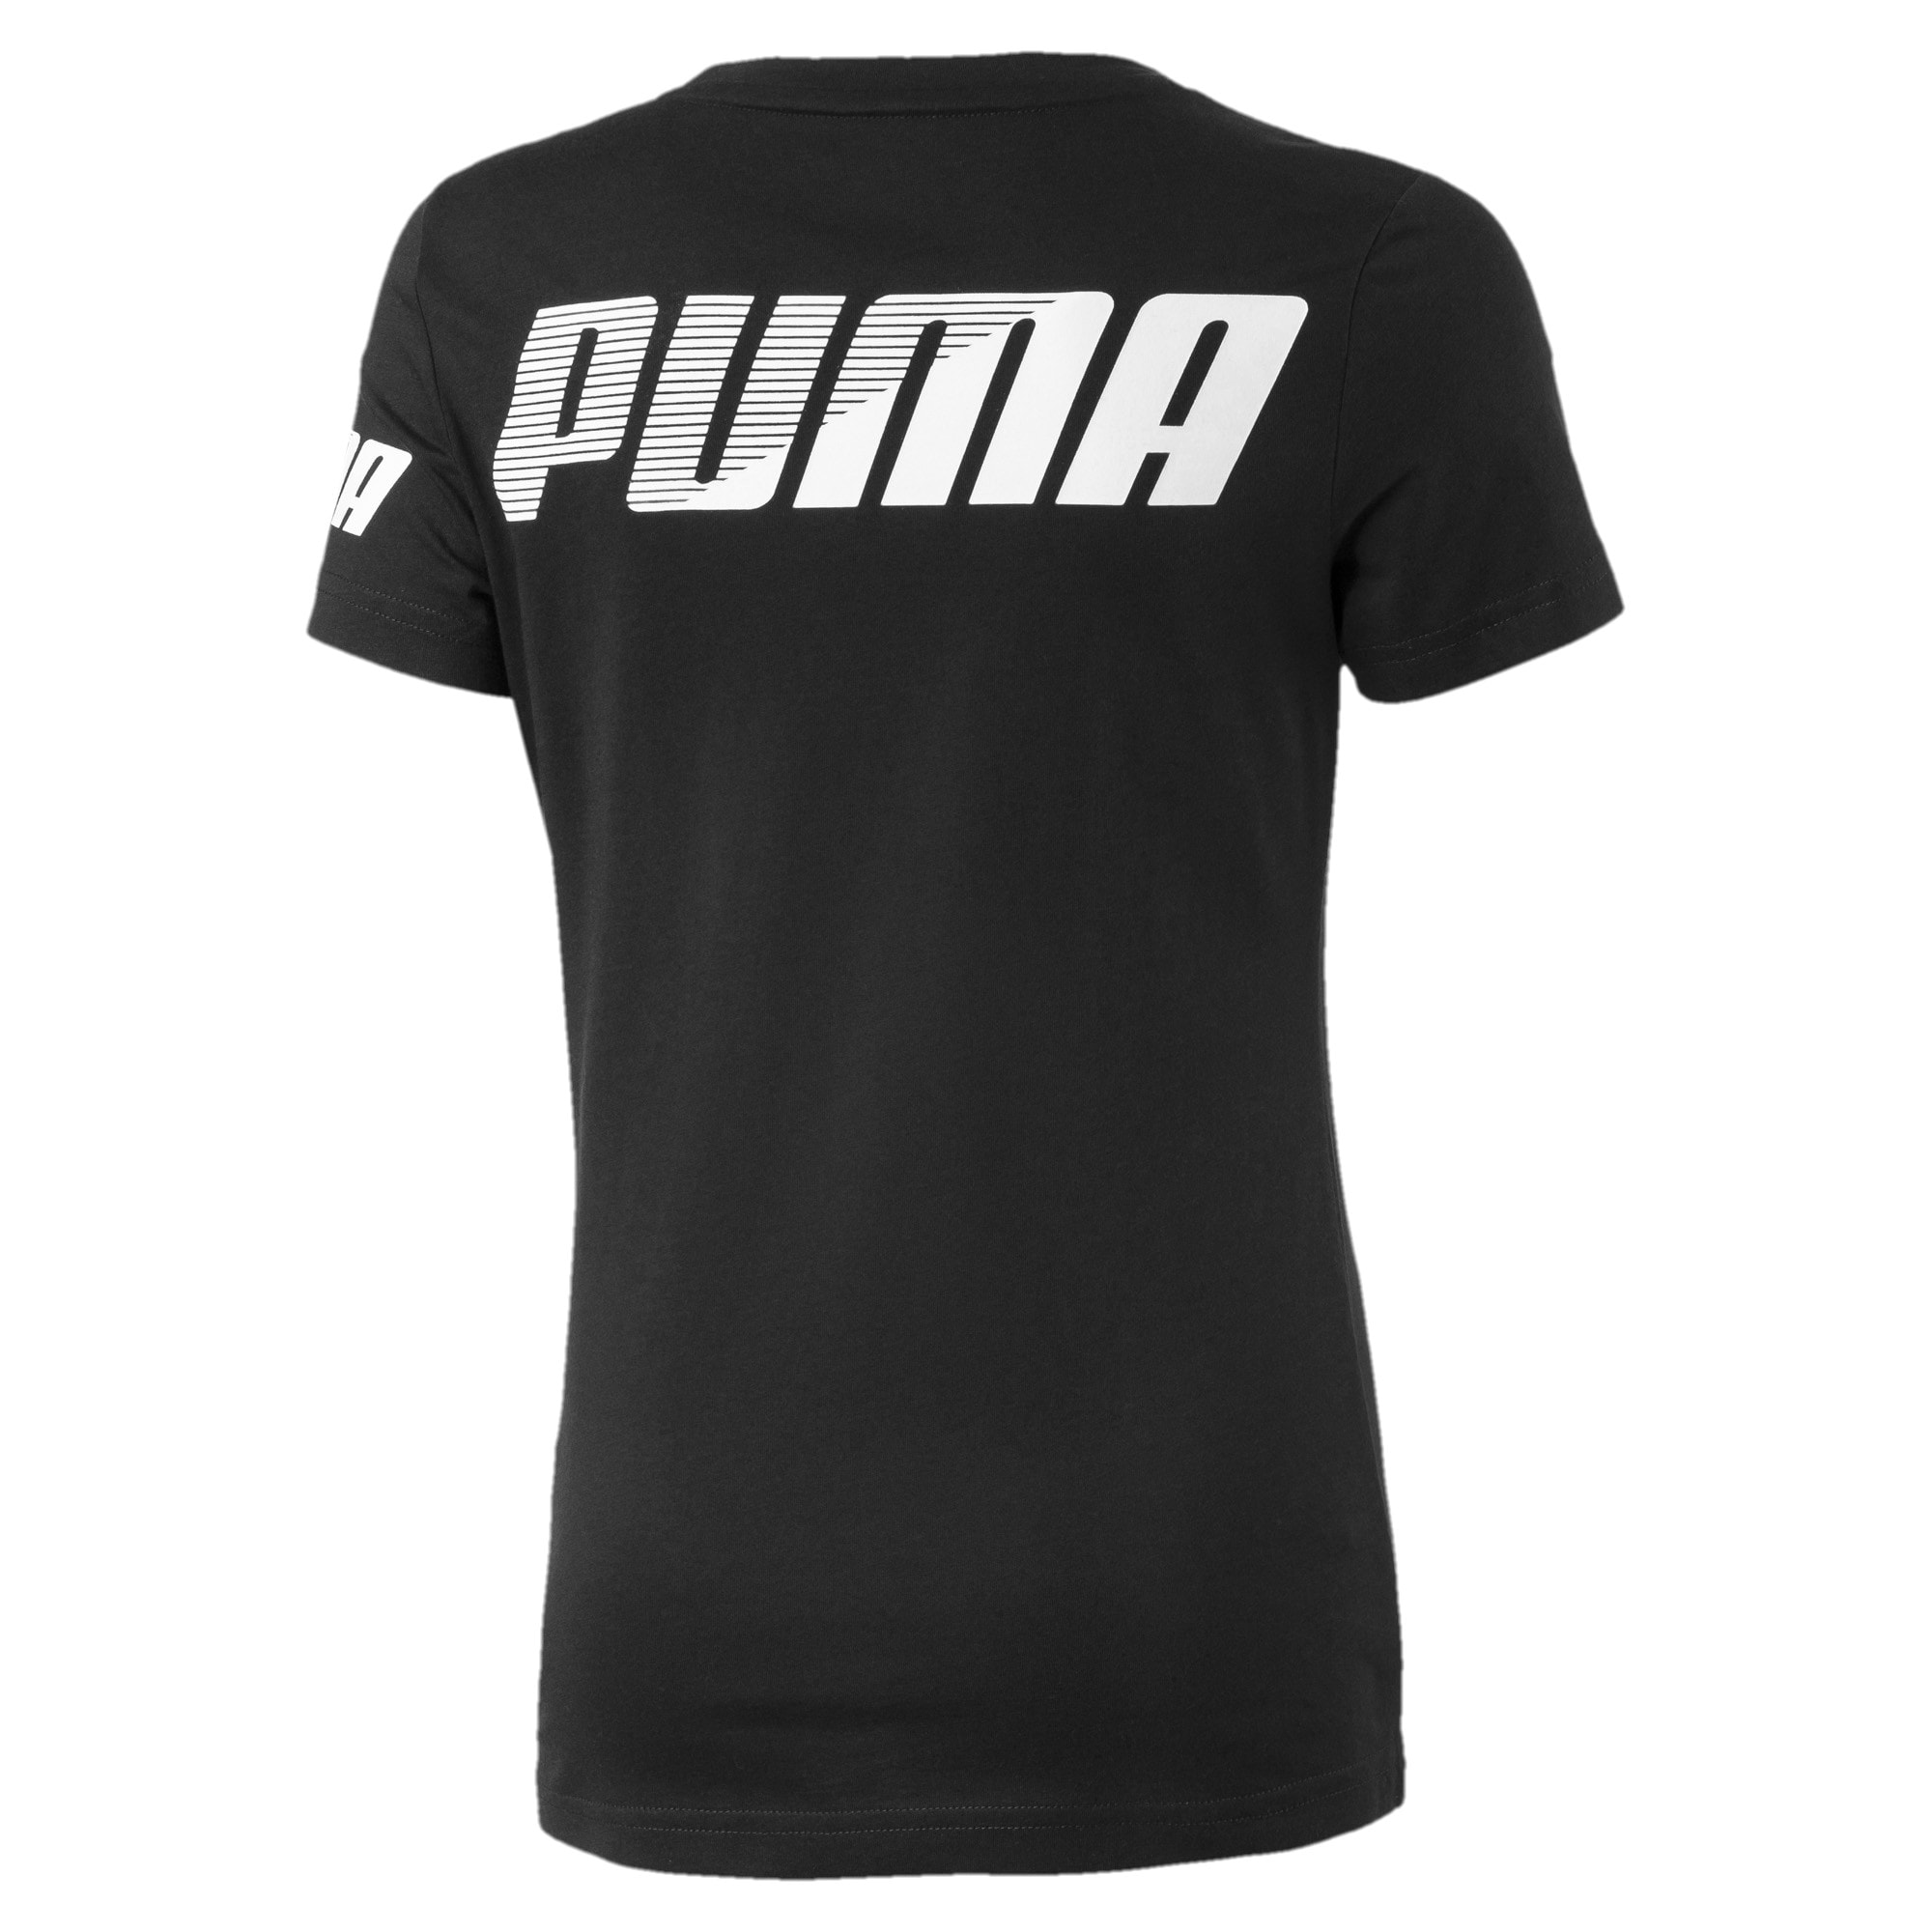 Thumbnail 2 of Modern Sports Mädchen T-Shirt, Puma Black, medium